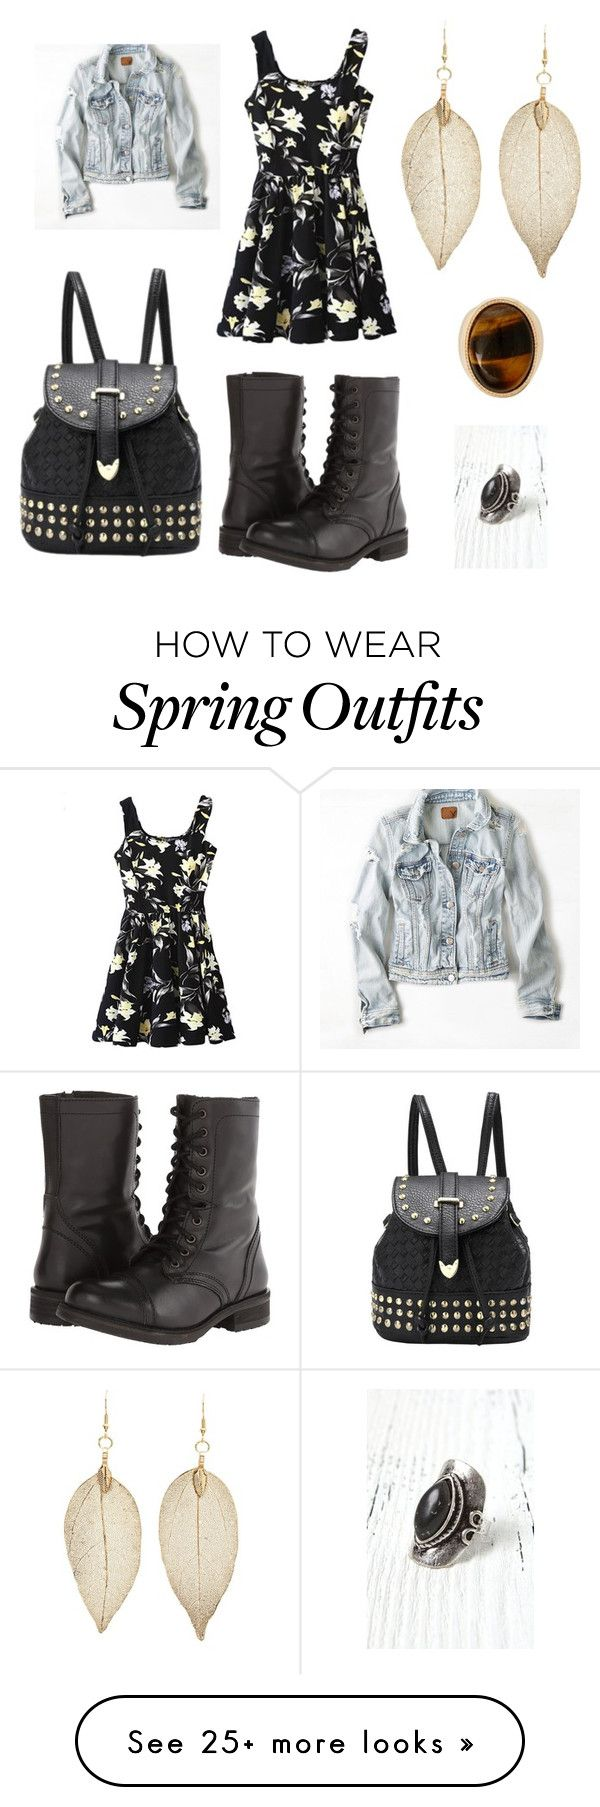 """Aria Montgomery - season 2 episode 2 - outfit 2"" by samantha1-a on Polyvore featuring American Eagle Outfitters, Charlotte Russe, Steve Madden, Warehouse and LA: Hearts"